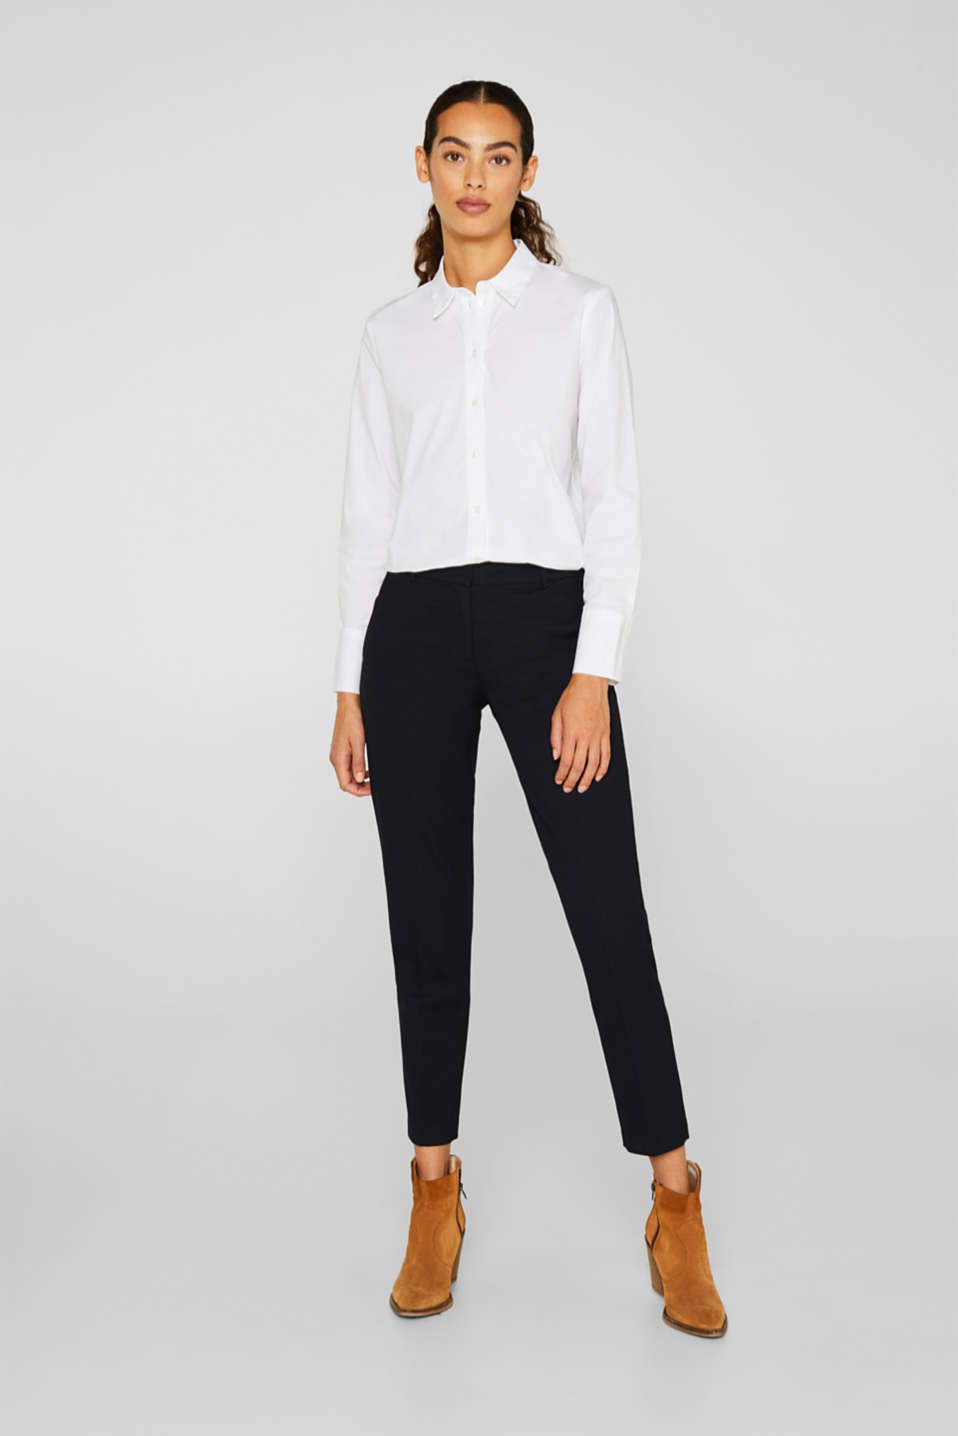 Esprit - TONE-IN-TONE STRUCTURE Mix + Match Stretch Trousers